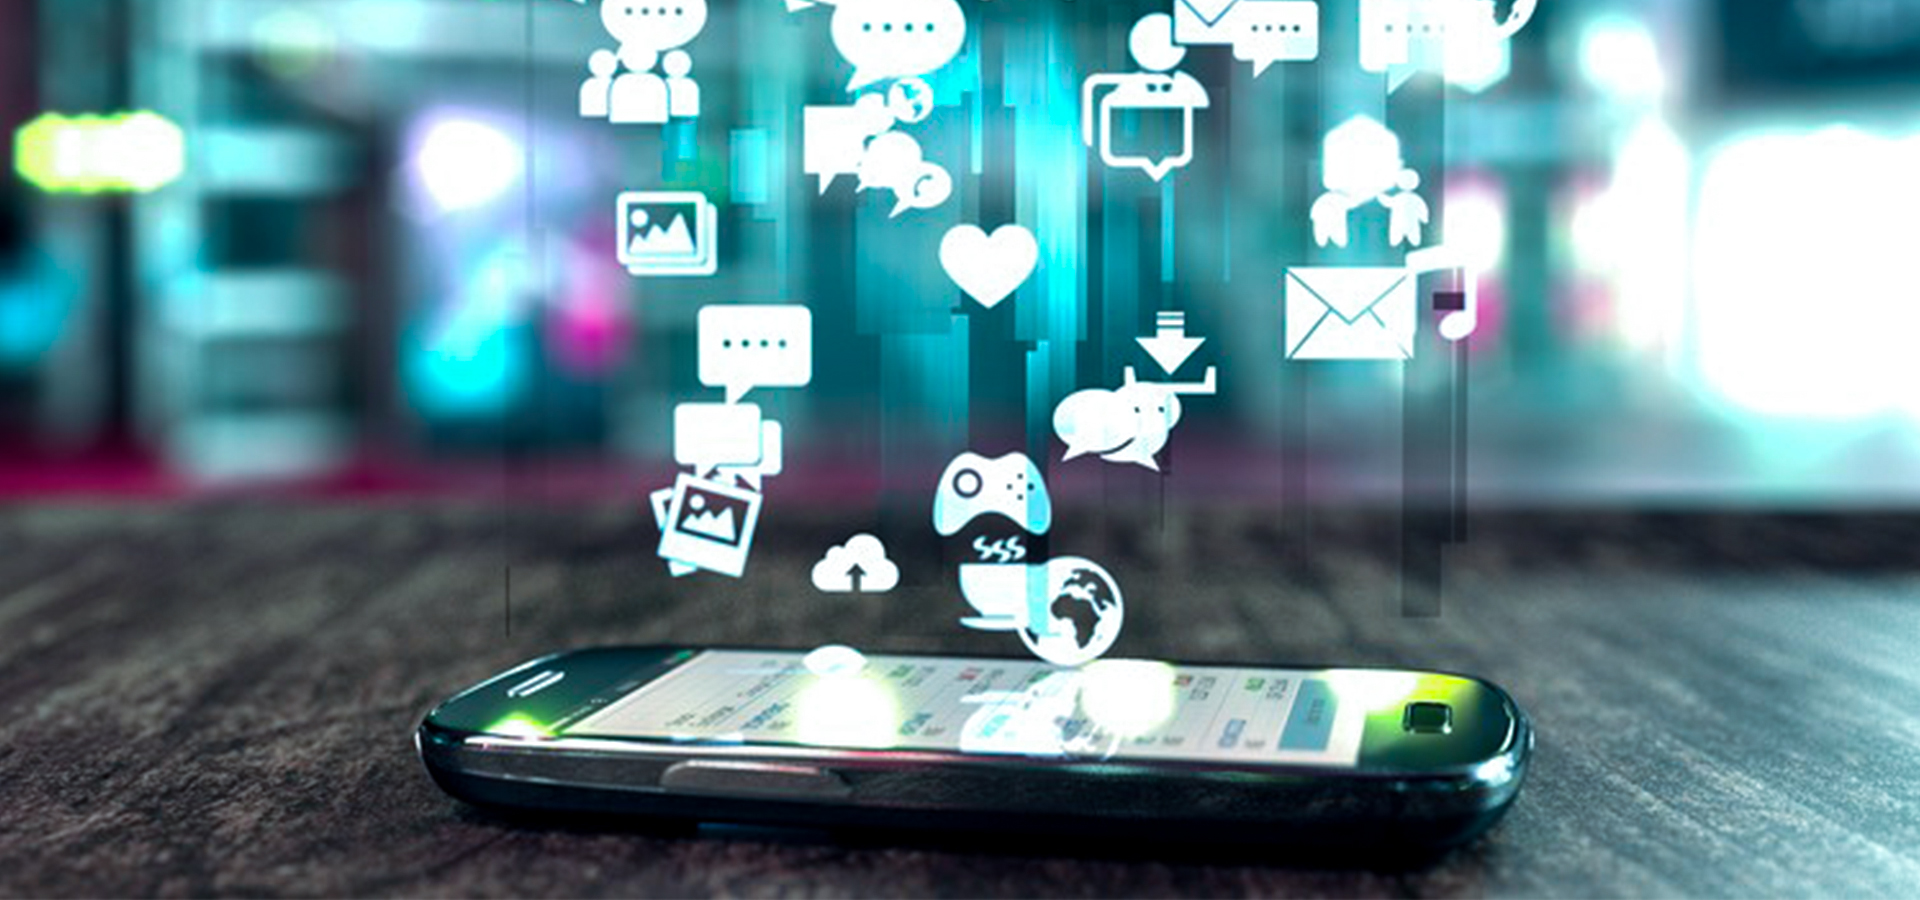 Mobile Technology: How To Build An Amazing Mobile App For Your Startup?